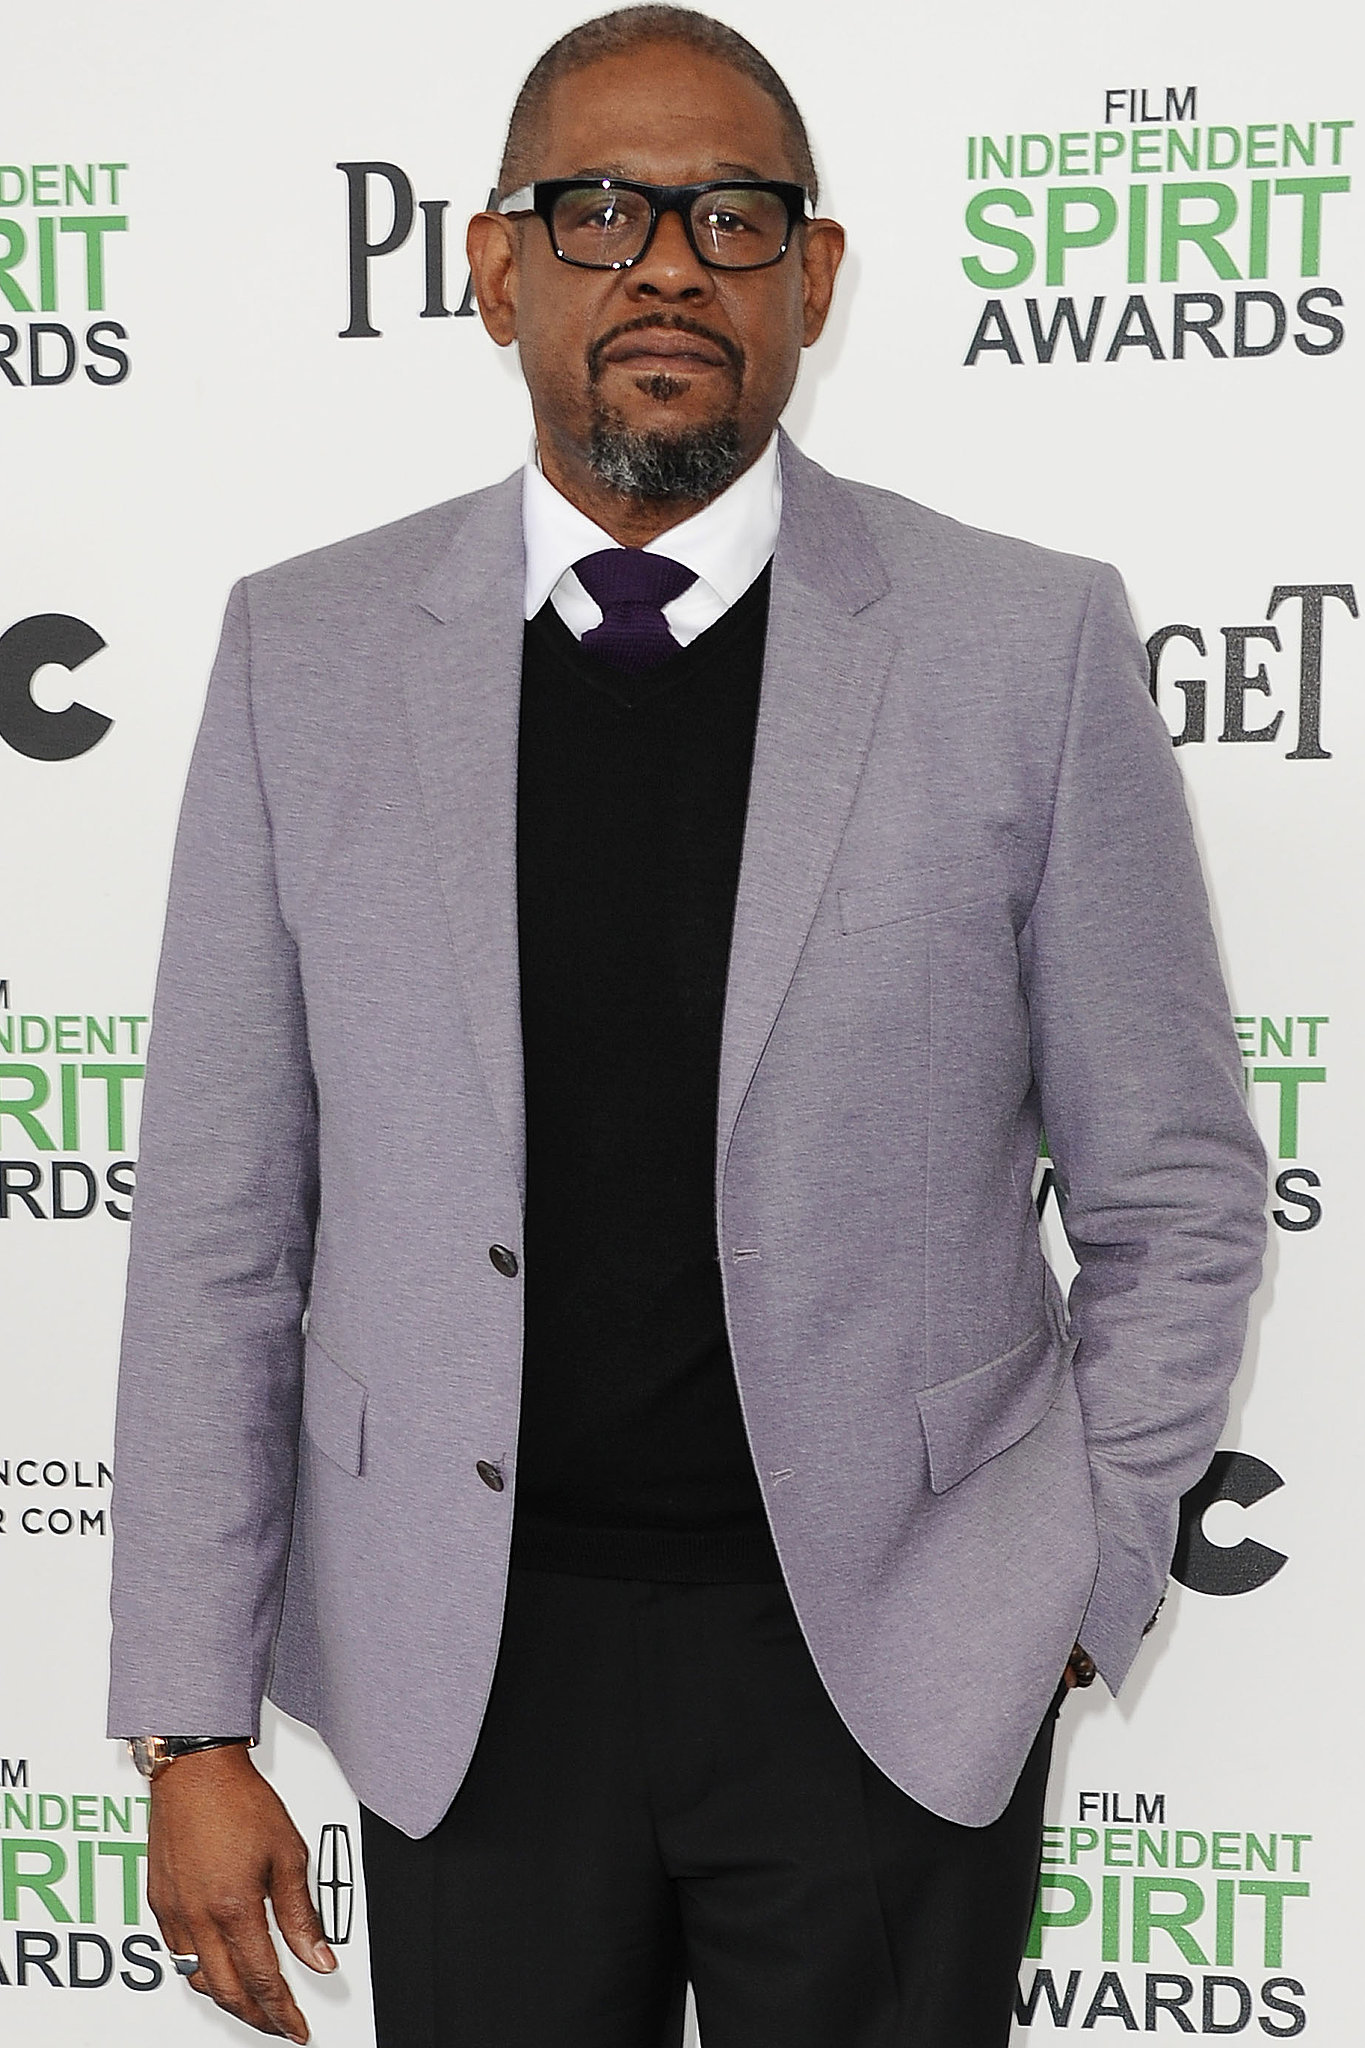 Forest Whitaker joined Southpaw as Jake Gyllenhaal's boxing trainer. Antoine Fuqua is directing, and Sons of Anarchy creator Kurt Sutter wrote the script.